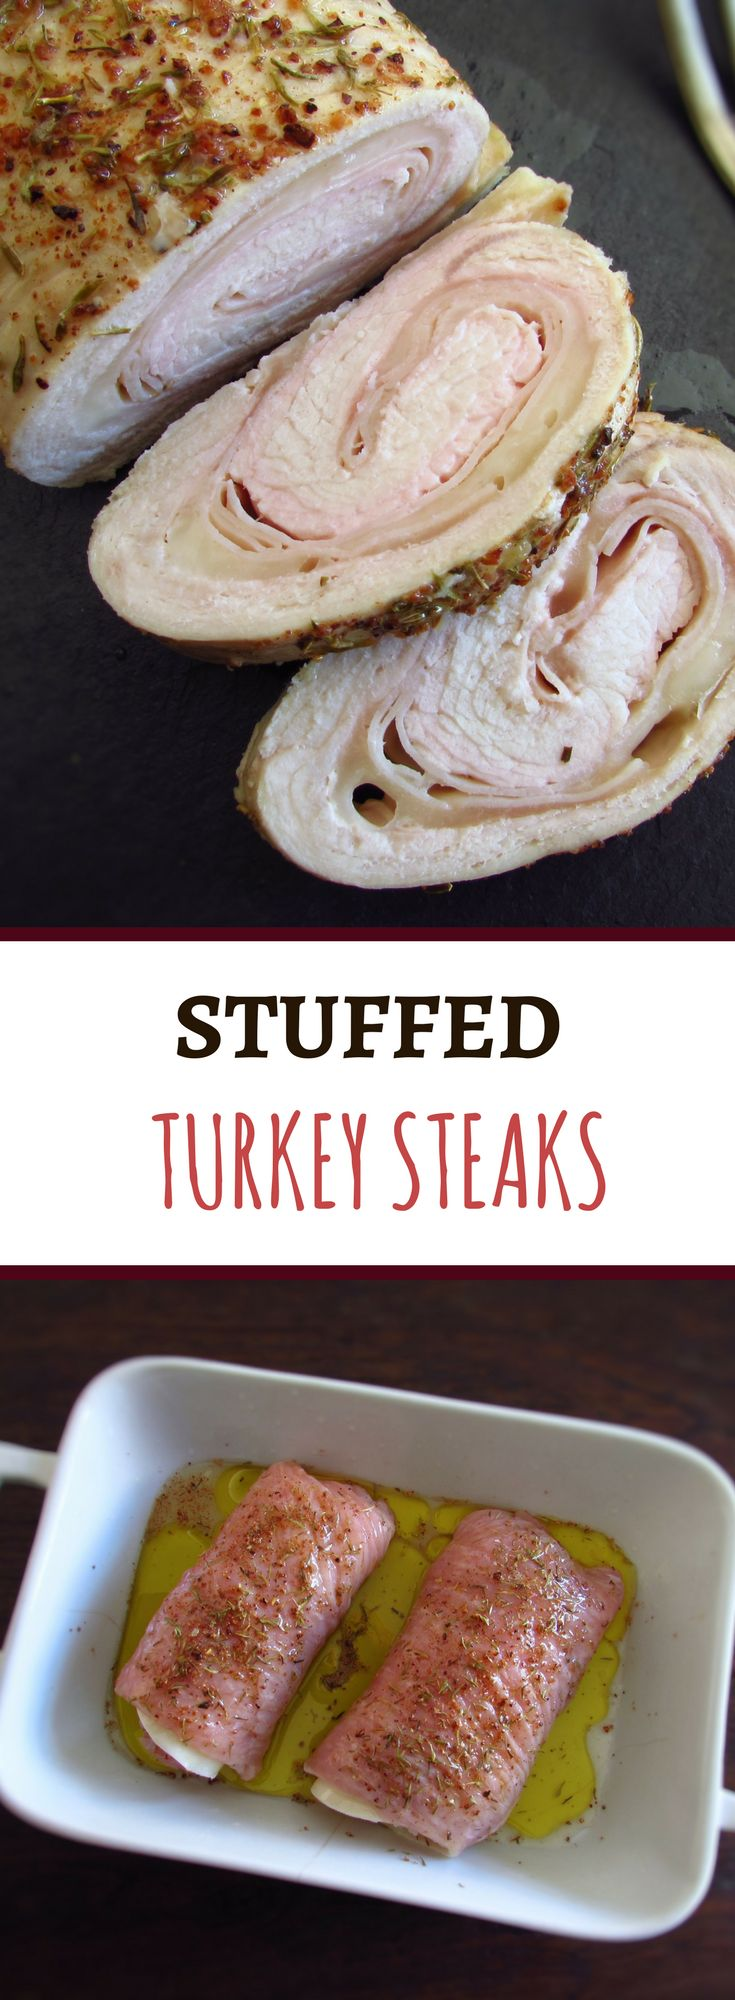 Stuffed turkey steaks | Food From Portugal. If you like turkey you will love this stuffed turkey steaks recipe with ham and cheese! It's a different recipe, very easy to prepare and with excellent presentation! Bon appetit!!! #recipe #turkey #steak